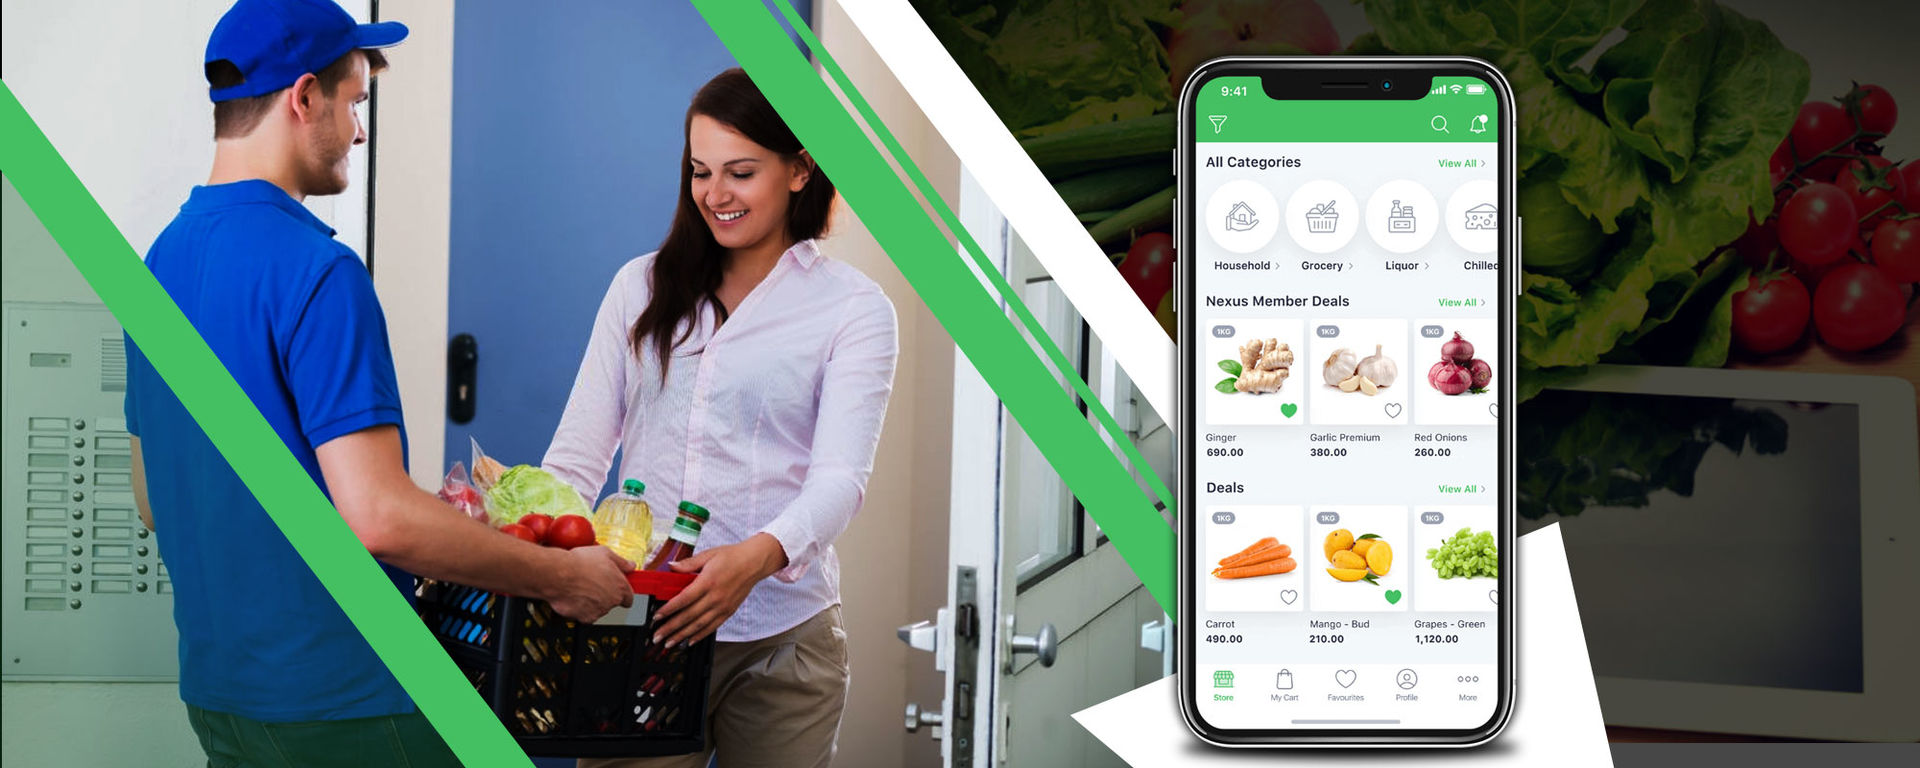 Bigbasket Raises $60 Million to Service Growing Demand: Startup a Grocery Business